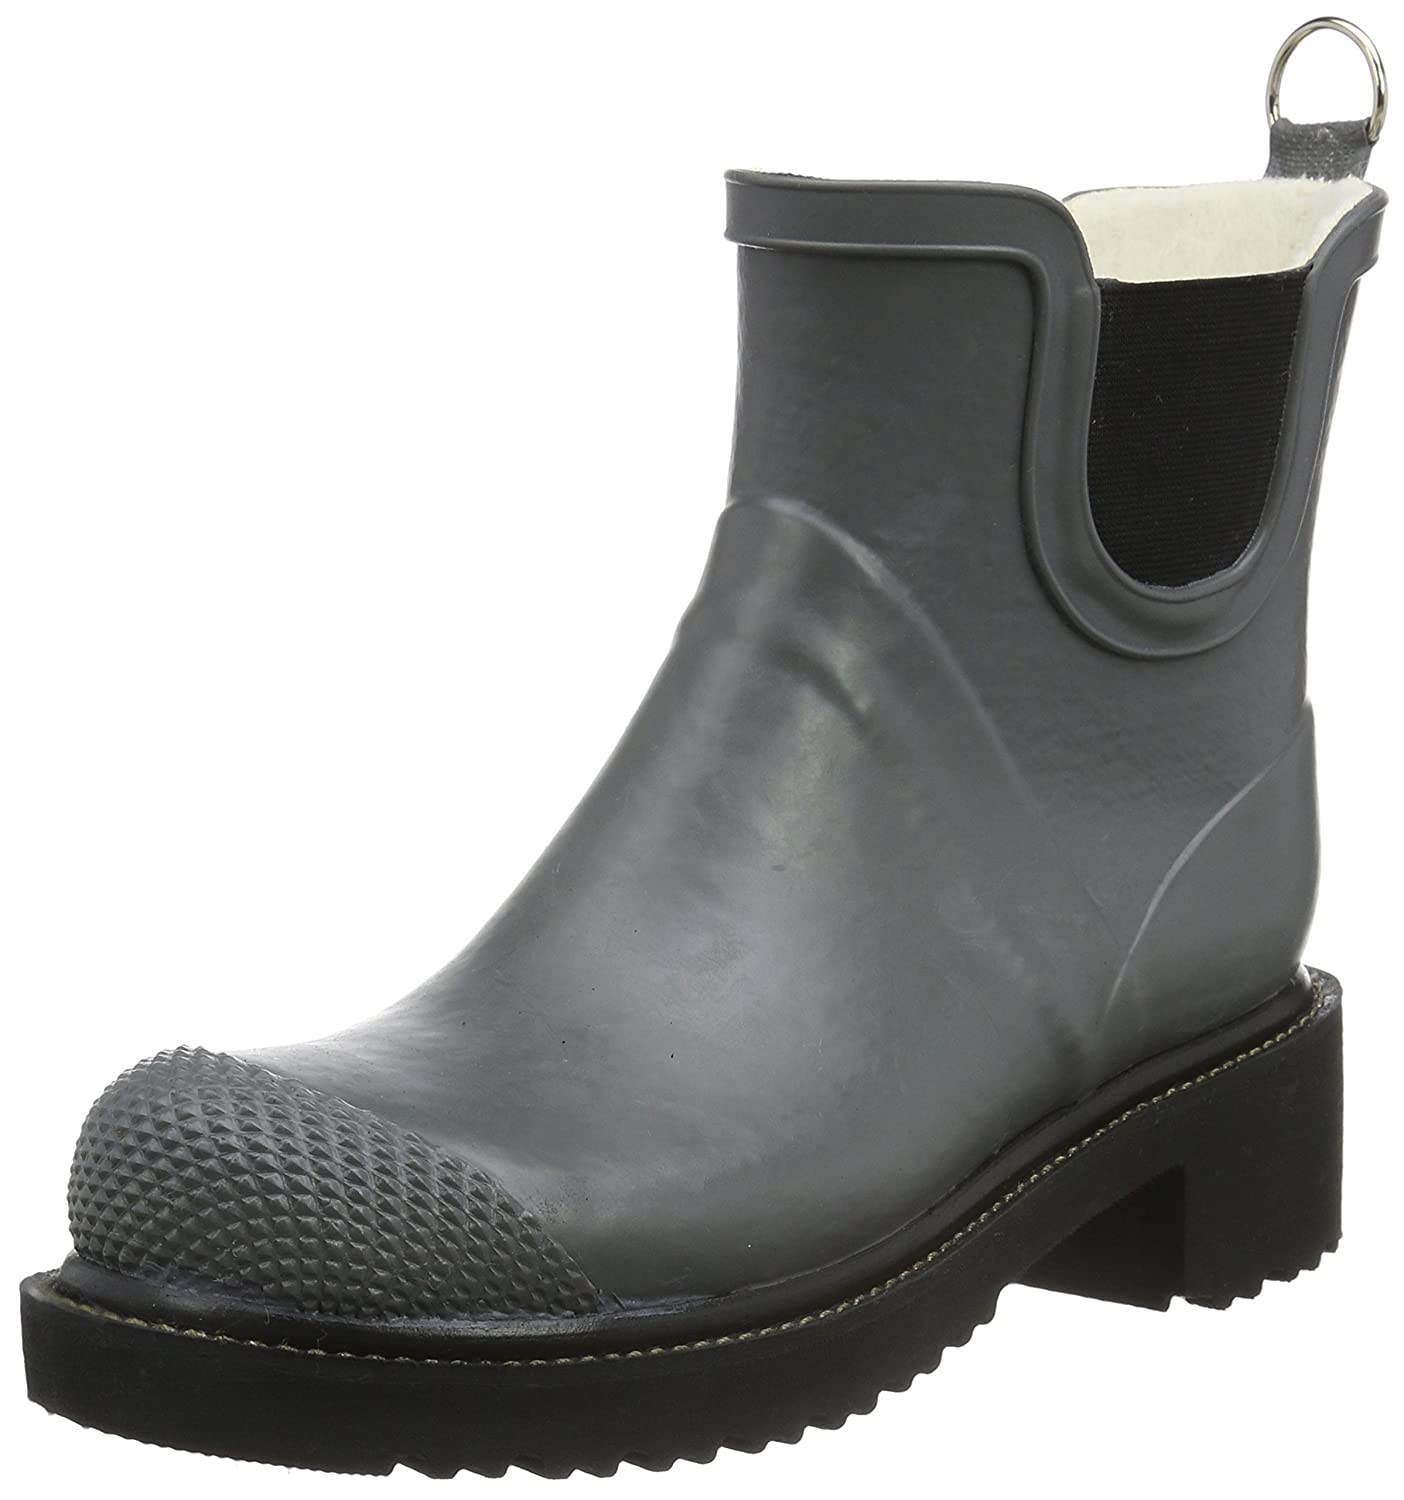 ILSE JACOBSEN Women's Rub 47 Rain Boot B01FMRW648 41 EU / 11-11.5 B(M) US|Gray